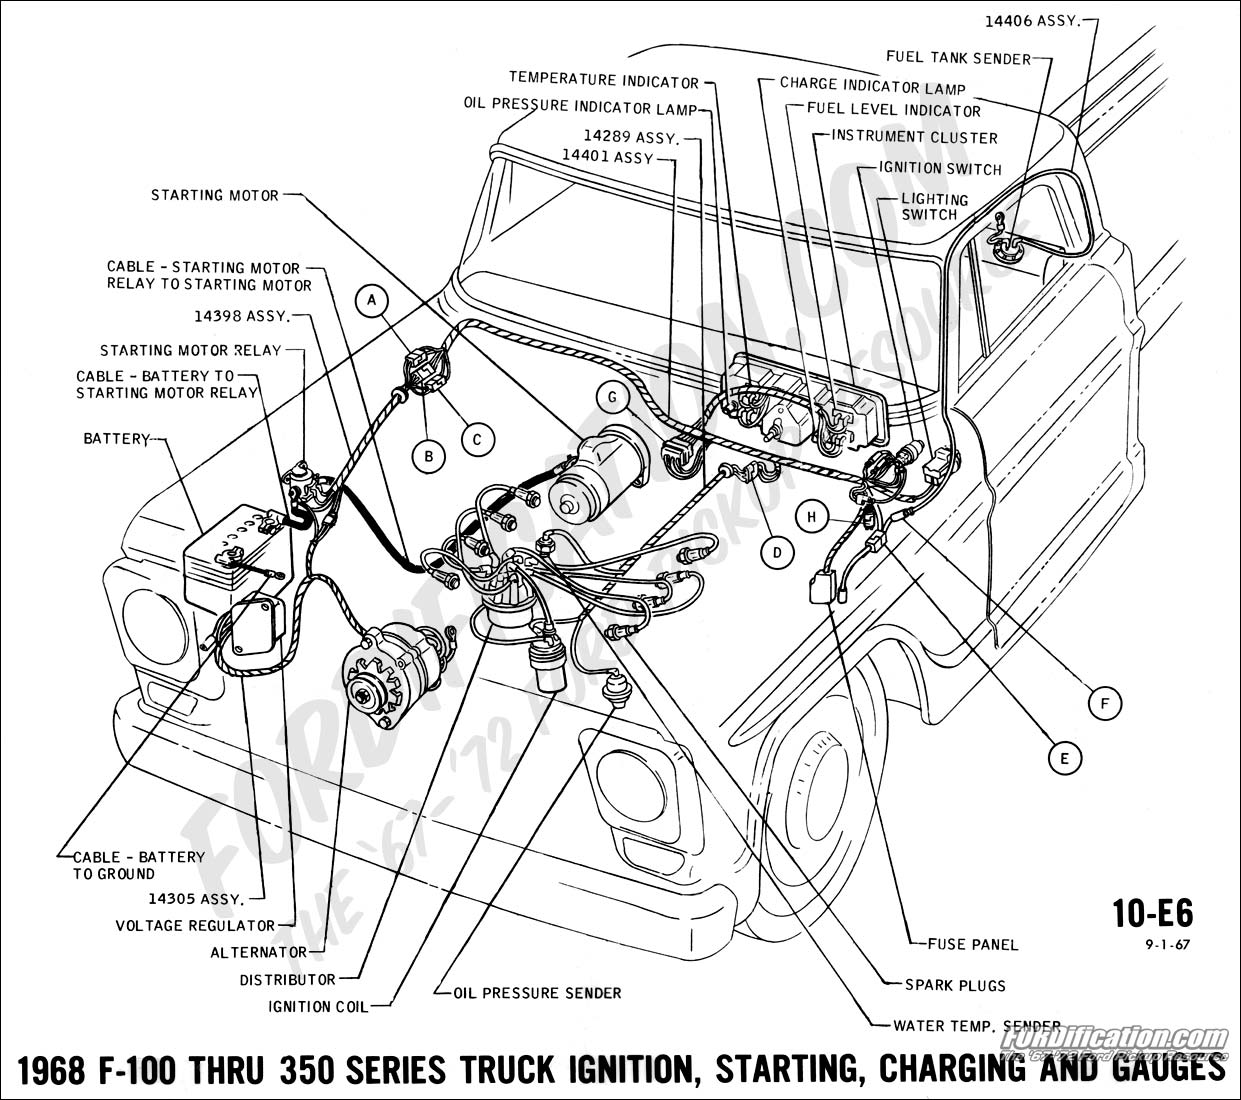 Wiring Diagram 1970 Ford F 250 Start Building A 2000 Alternator Truck Technical Drawings And Schematics Section H Rh Fordification Com 2003 1975